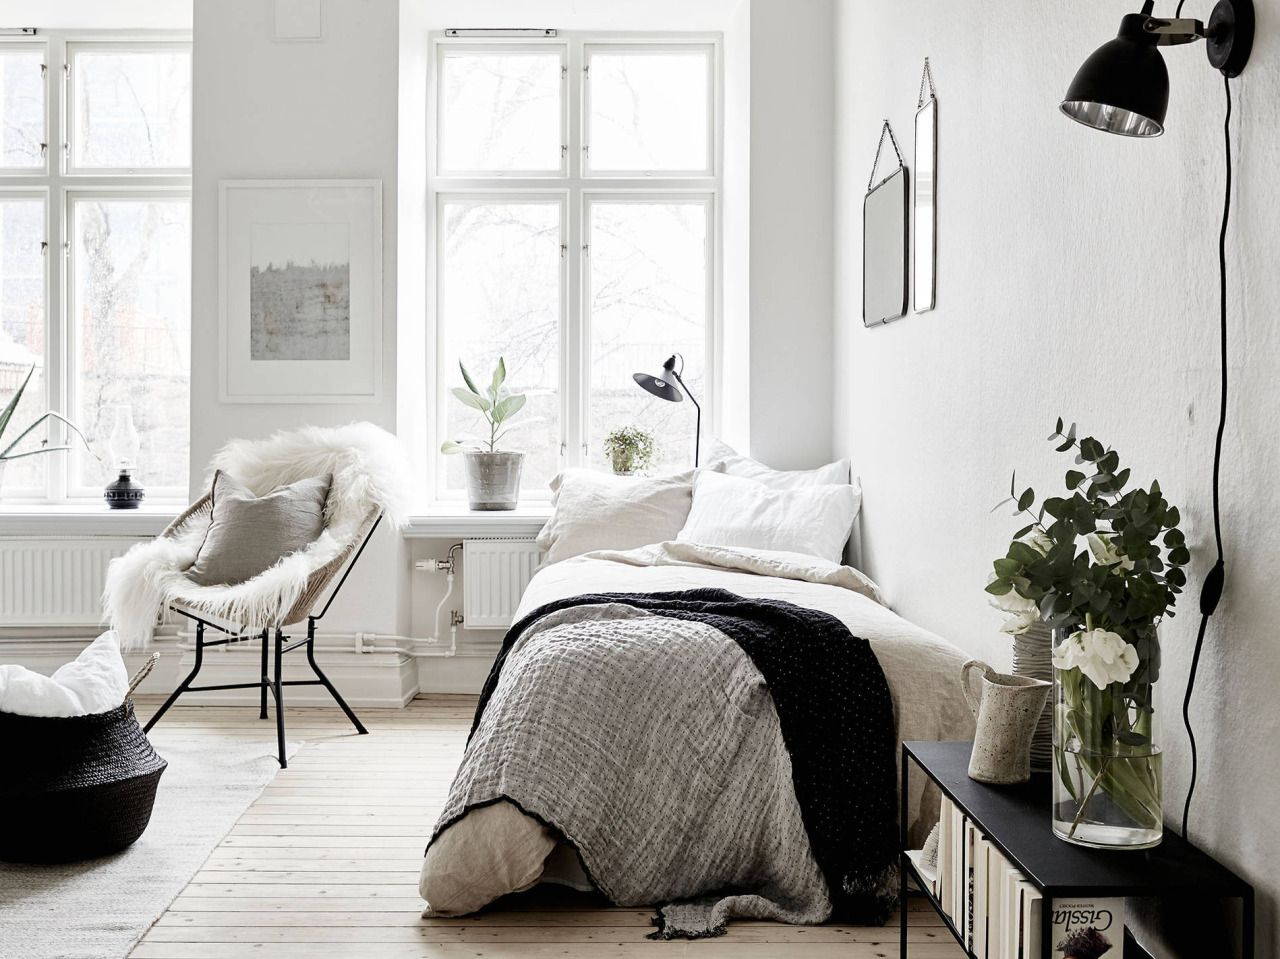 Sunday inspiration from a beautiful apartment in